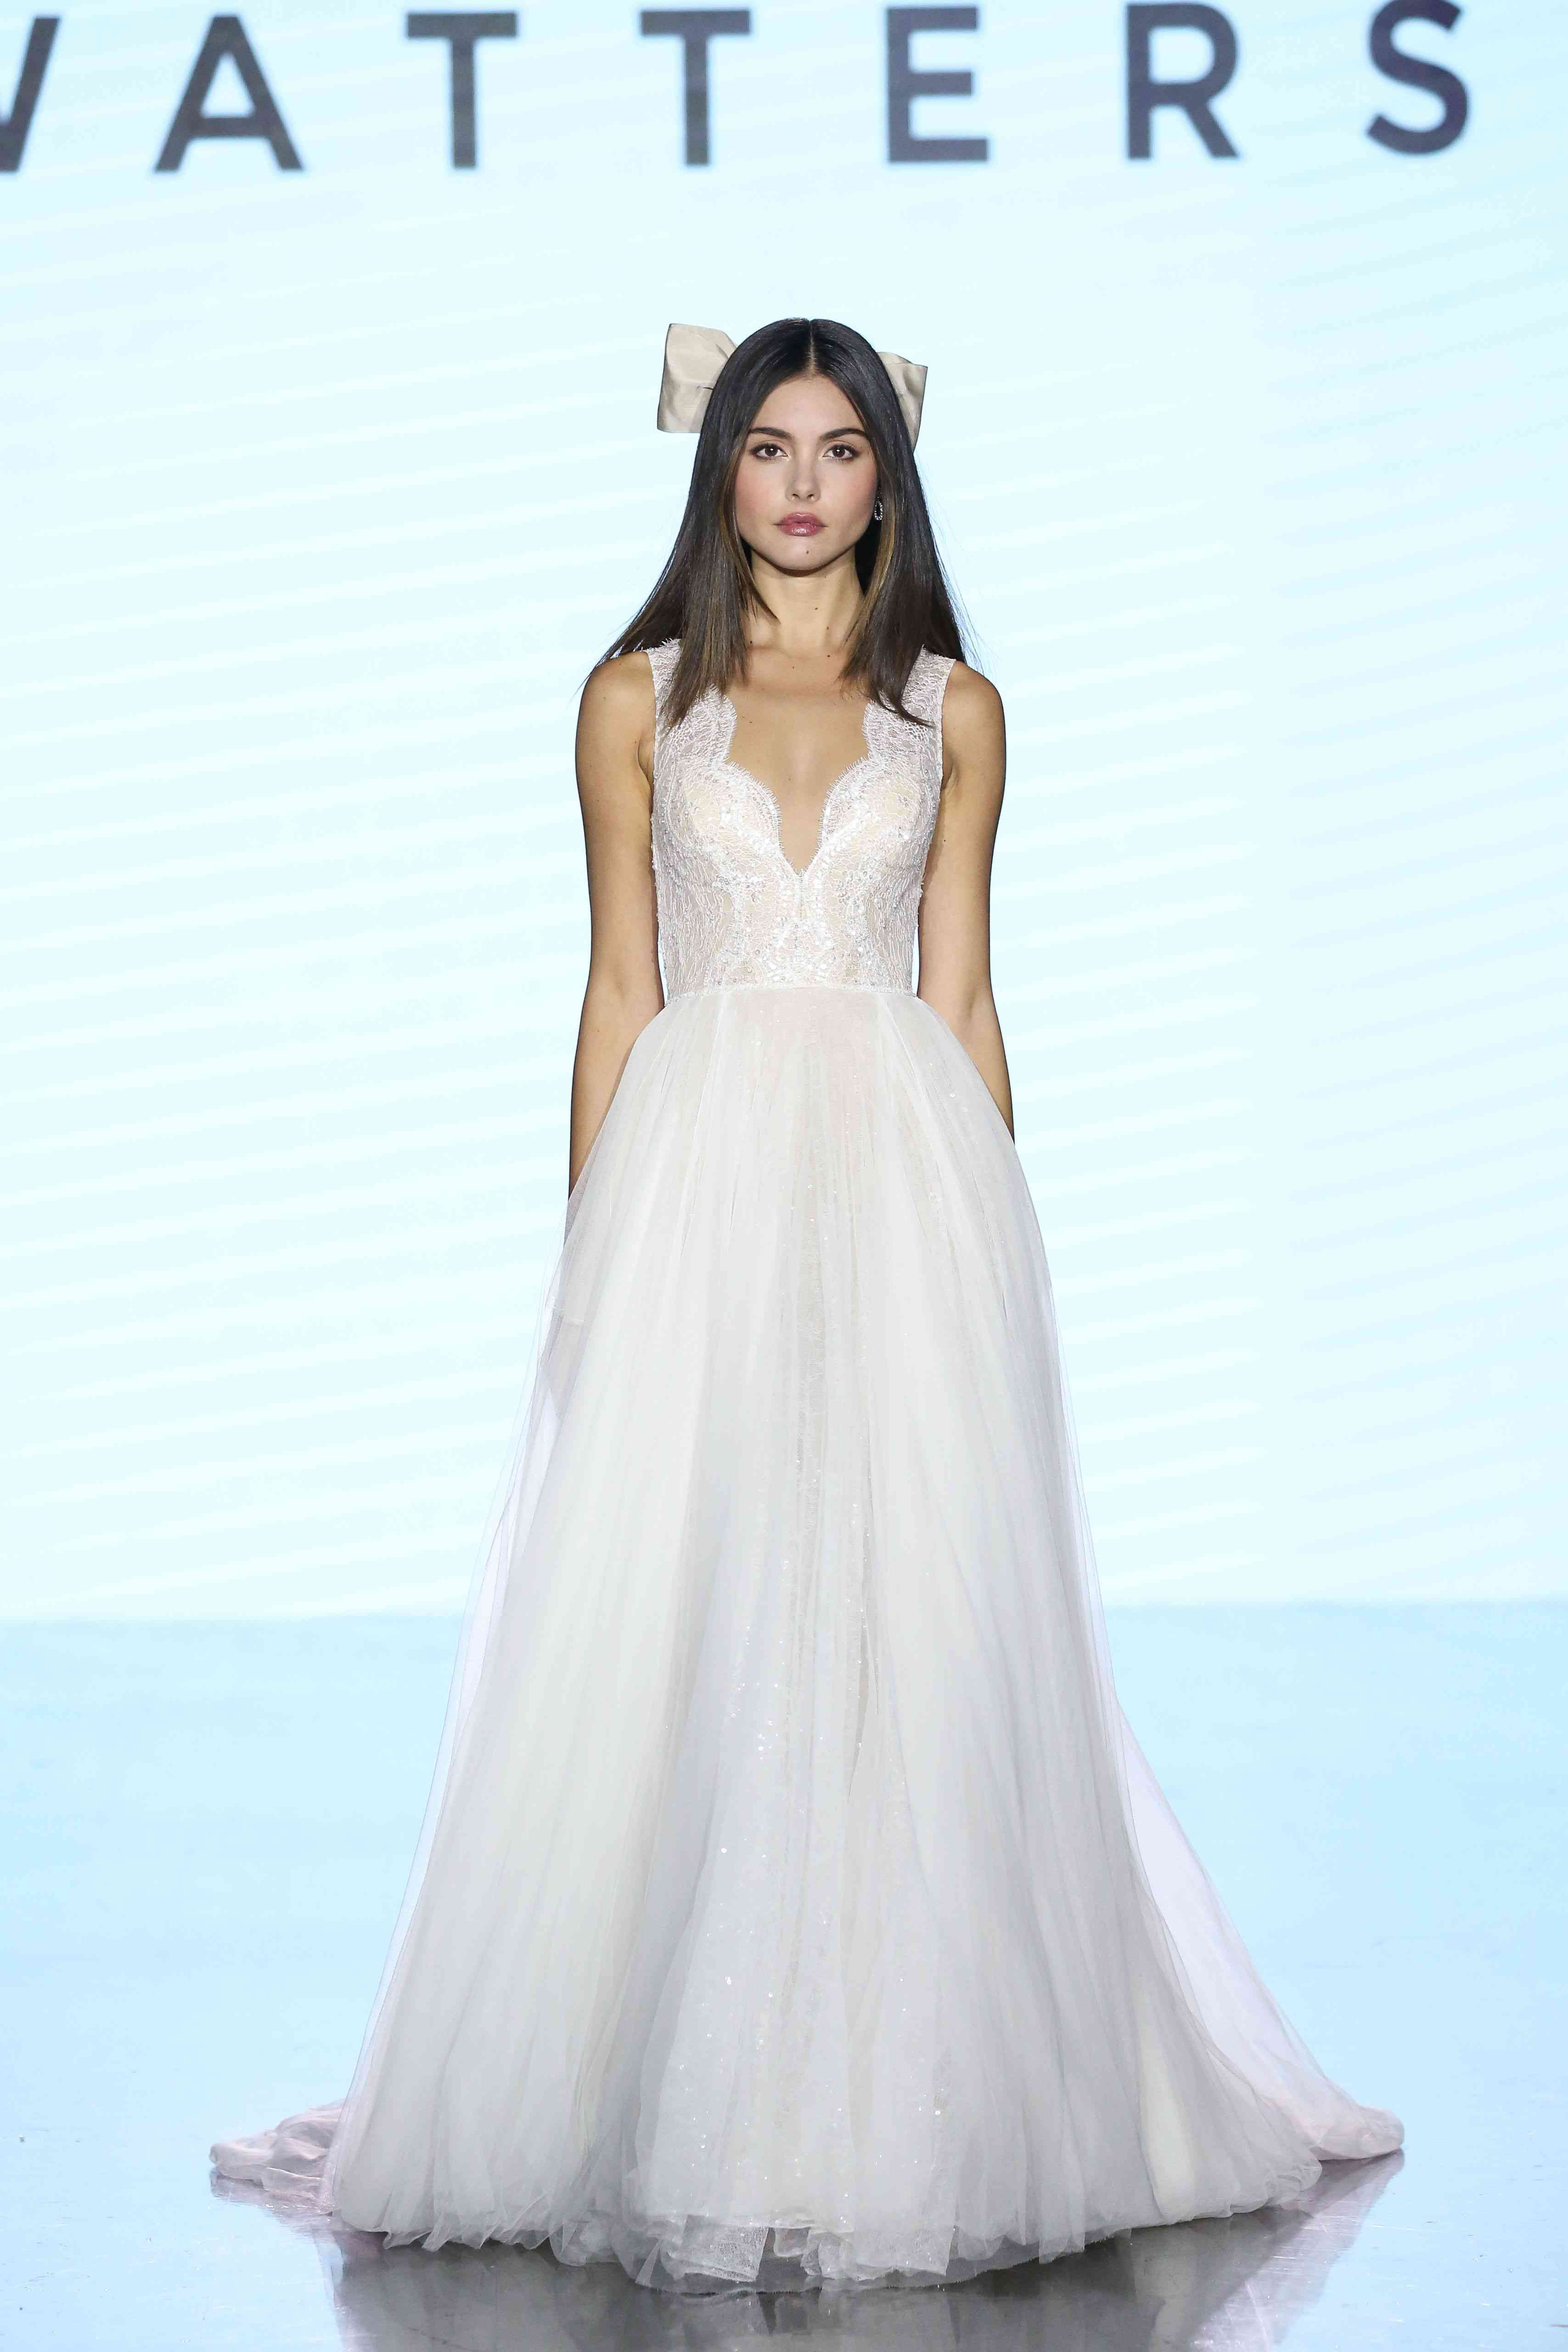 Model on runway in bridal ballgown with a scalloped plunging neckline, lace bodice, and tulle skirt